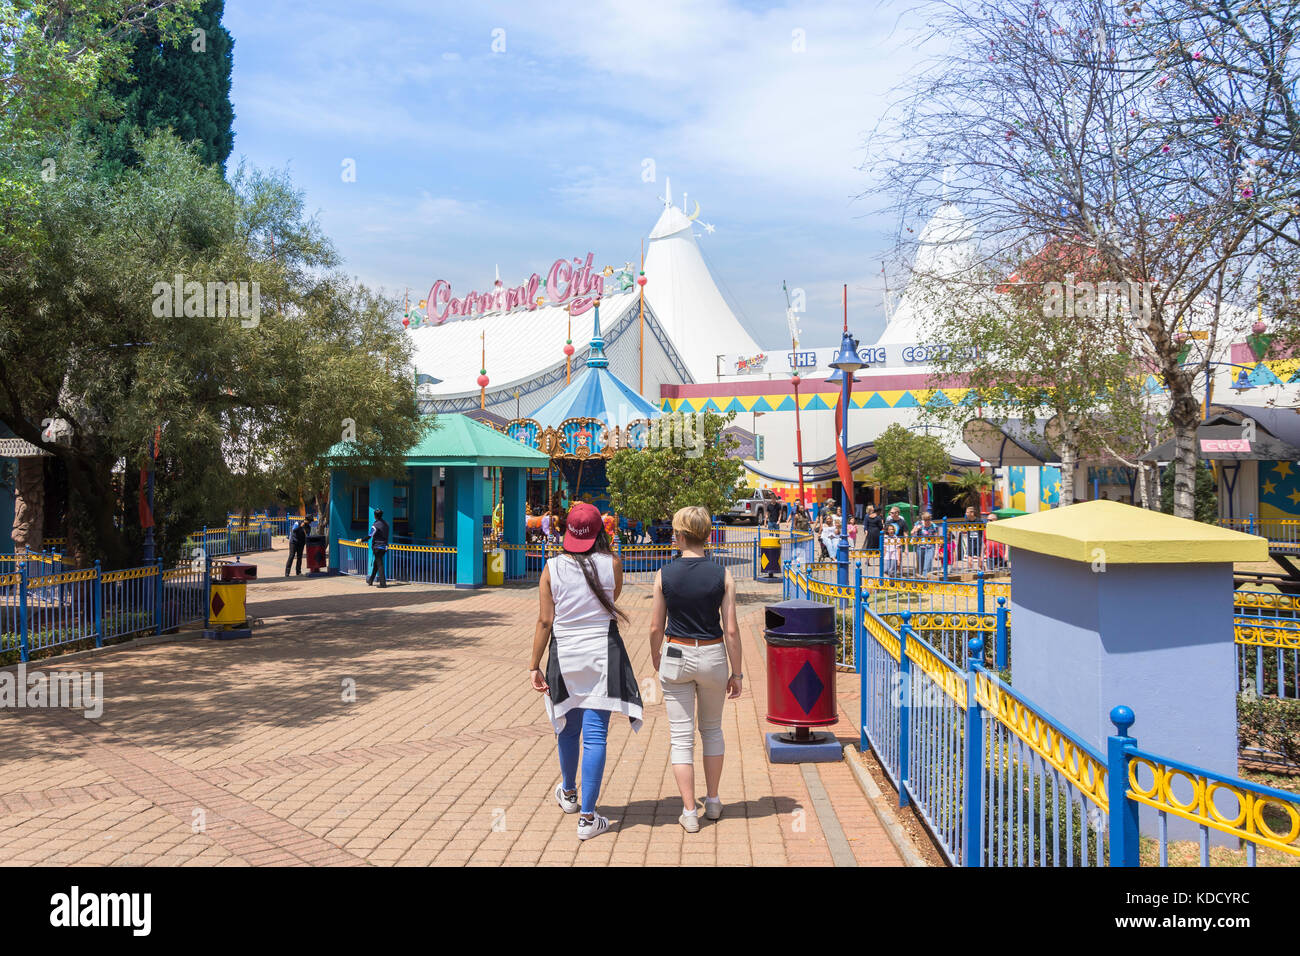 Recinto ferial en la Ciudad de Carnaval Casino & Entertainment World, Brakpan, East Rand, Mayor Johannesberg, Imagen De Stock